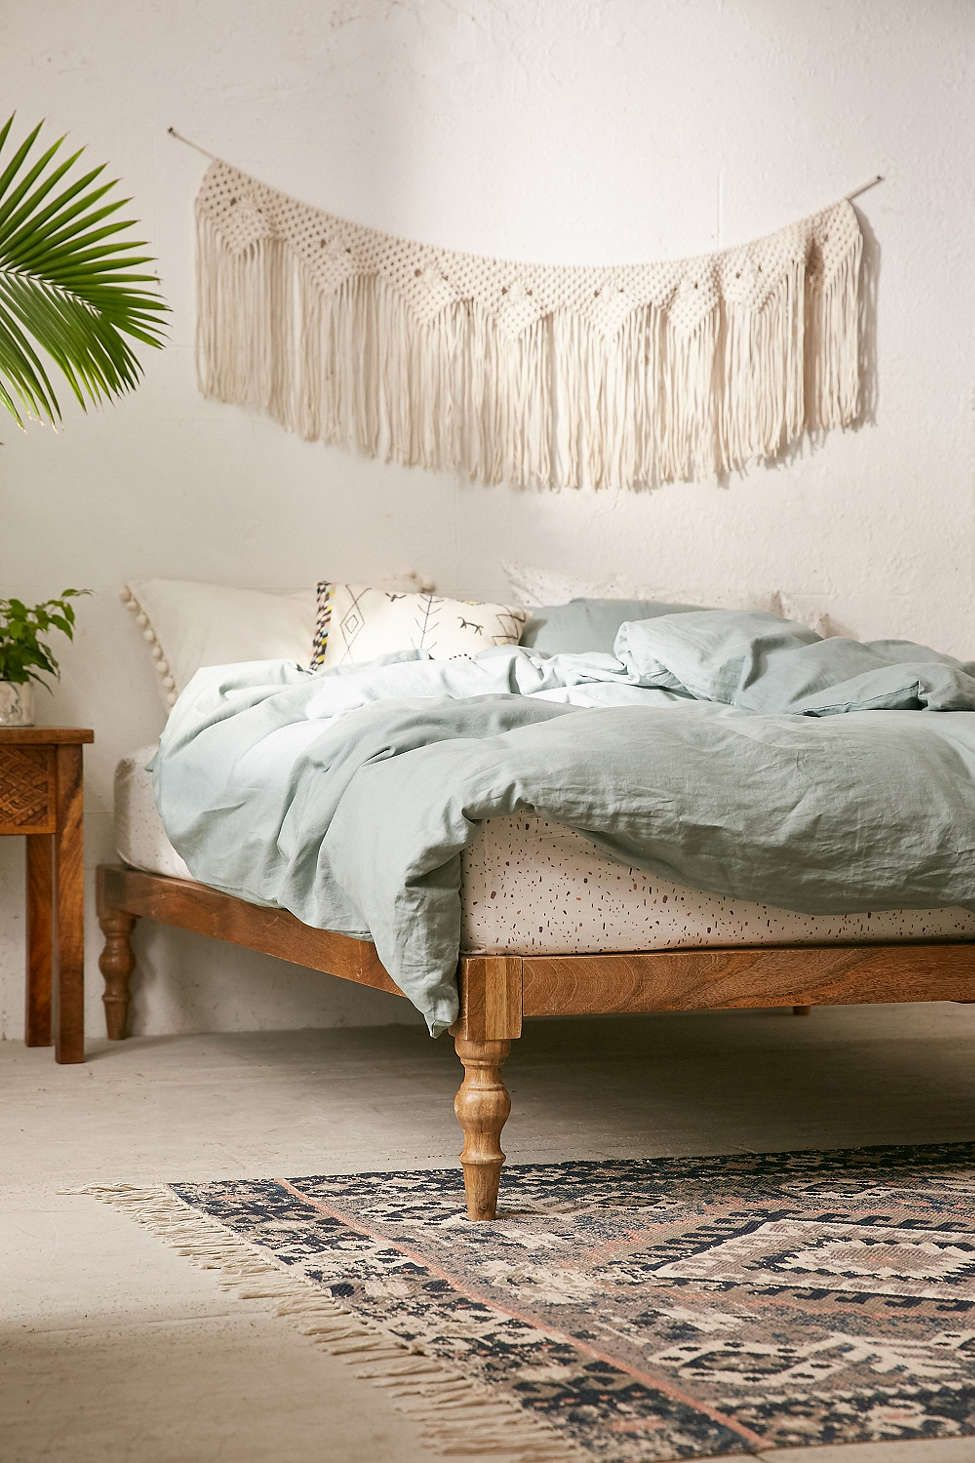 Bohemian Platform Bed Bedroom Decor Home Bedroom Wood Platform Bed